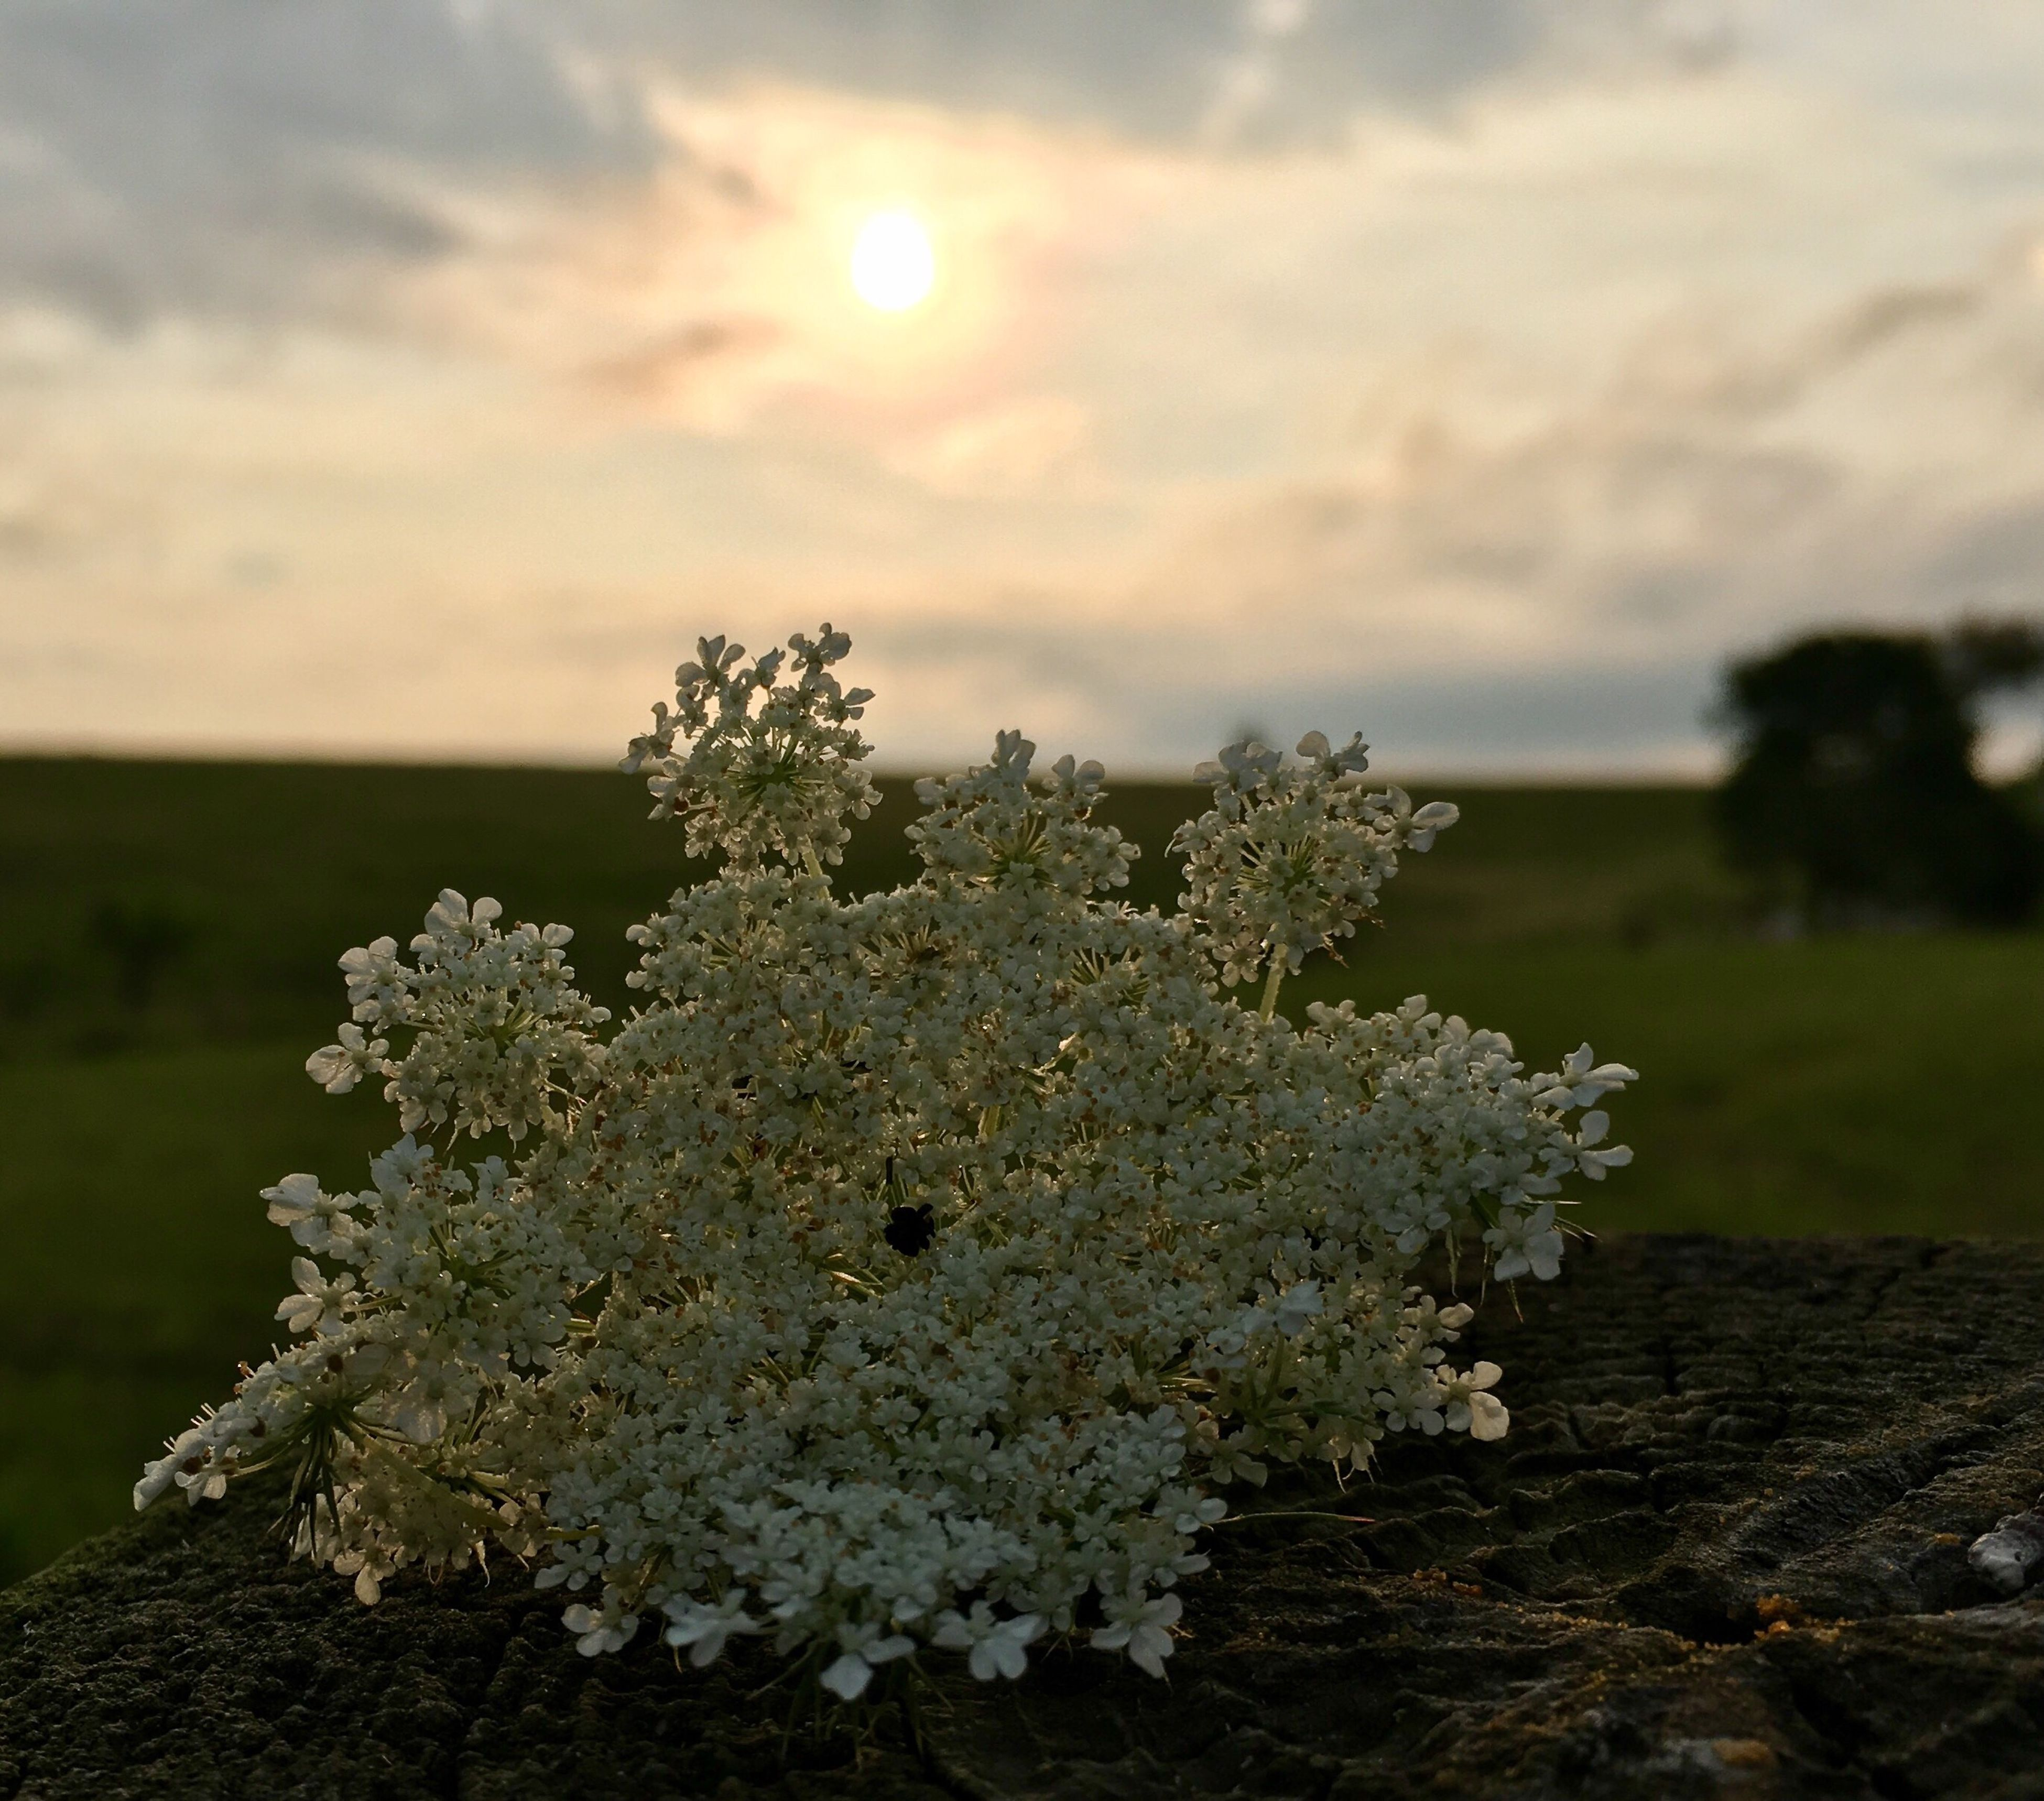 nature, beauty in nature, growth, tranquility, outdoors, no people, plant, scenics, tree, day, sunset, sky, close-up, flower, fragility, freshness